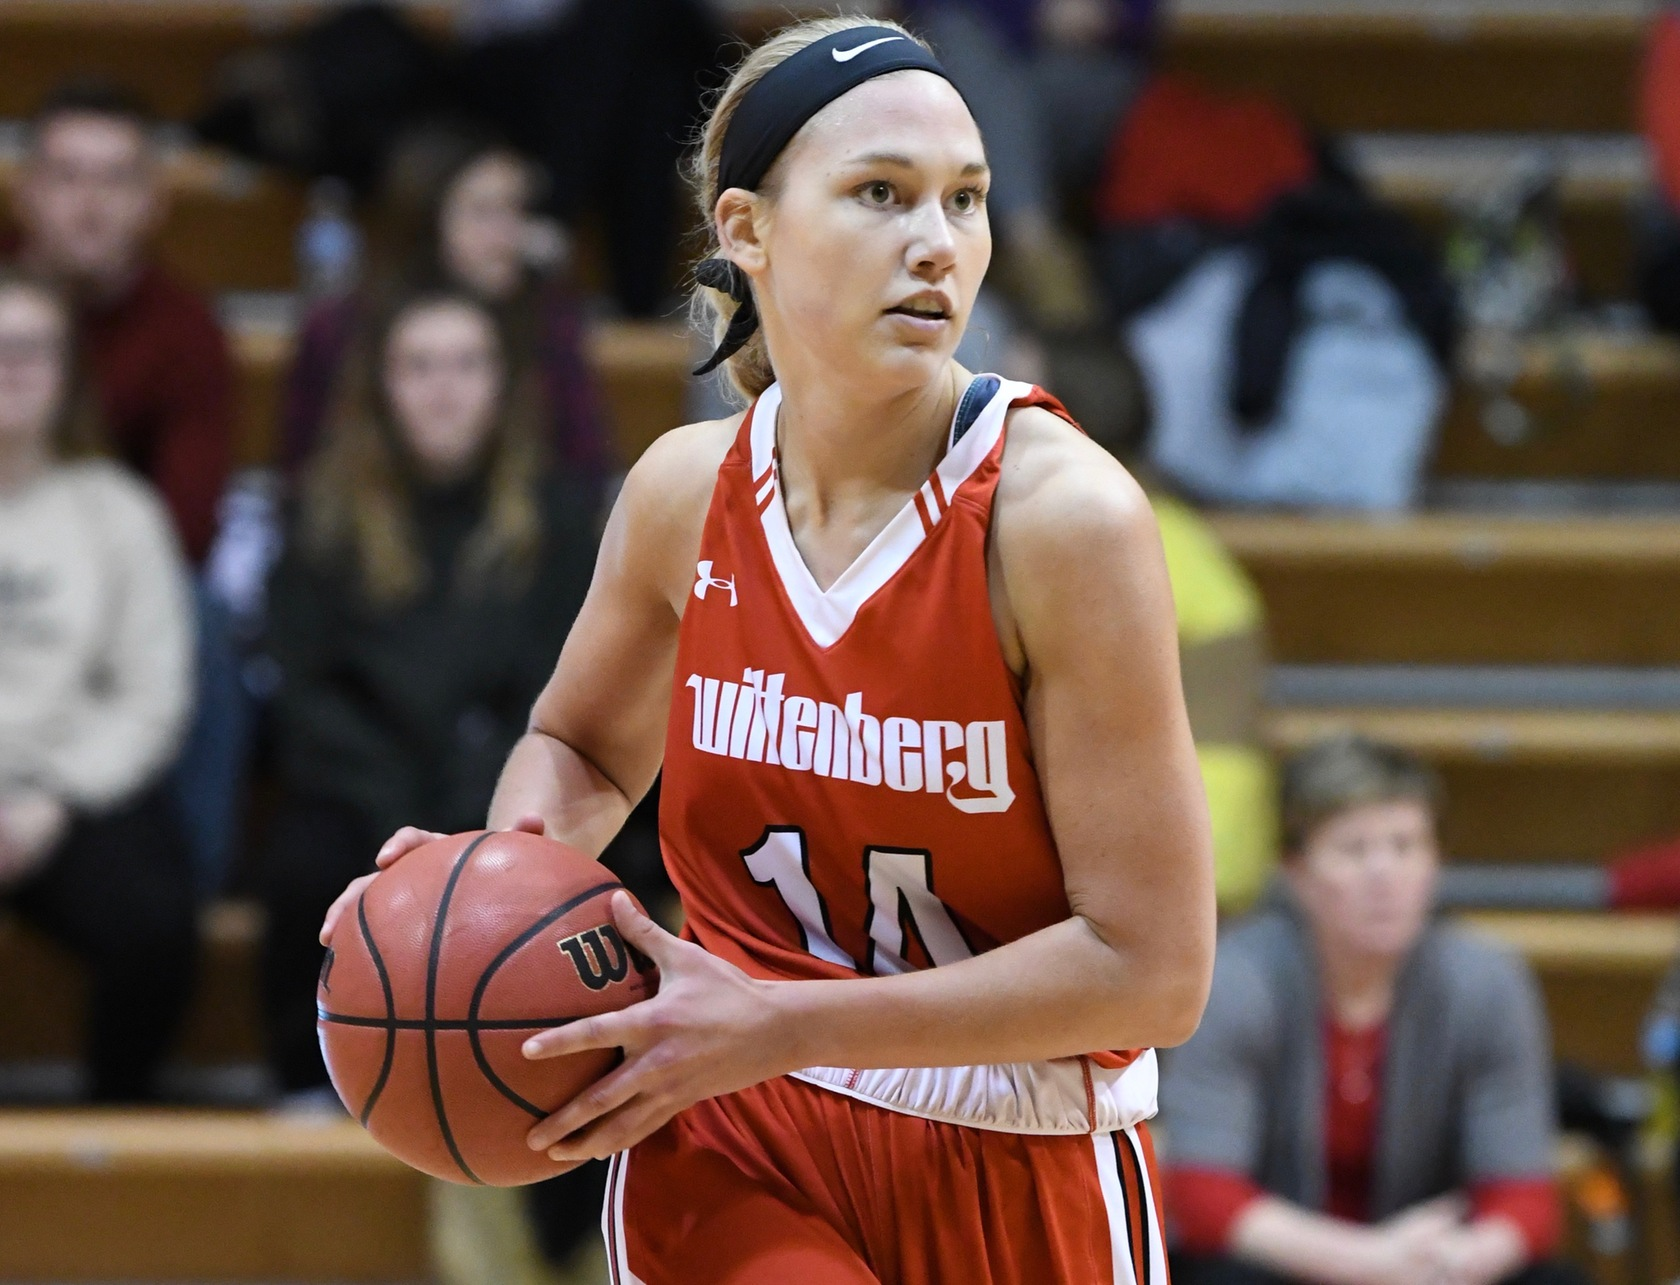 Junior Riley Culver finished one rebound shy of a double-double in Wittenberg's 76-57 at Ohio Wesleyan